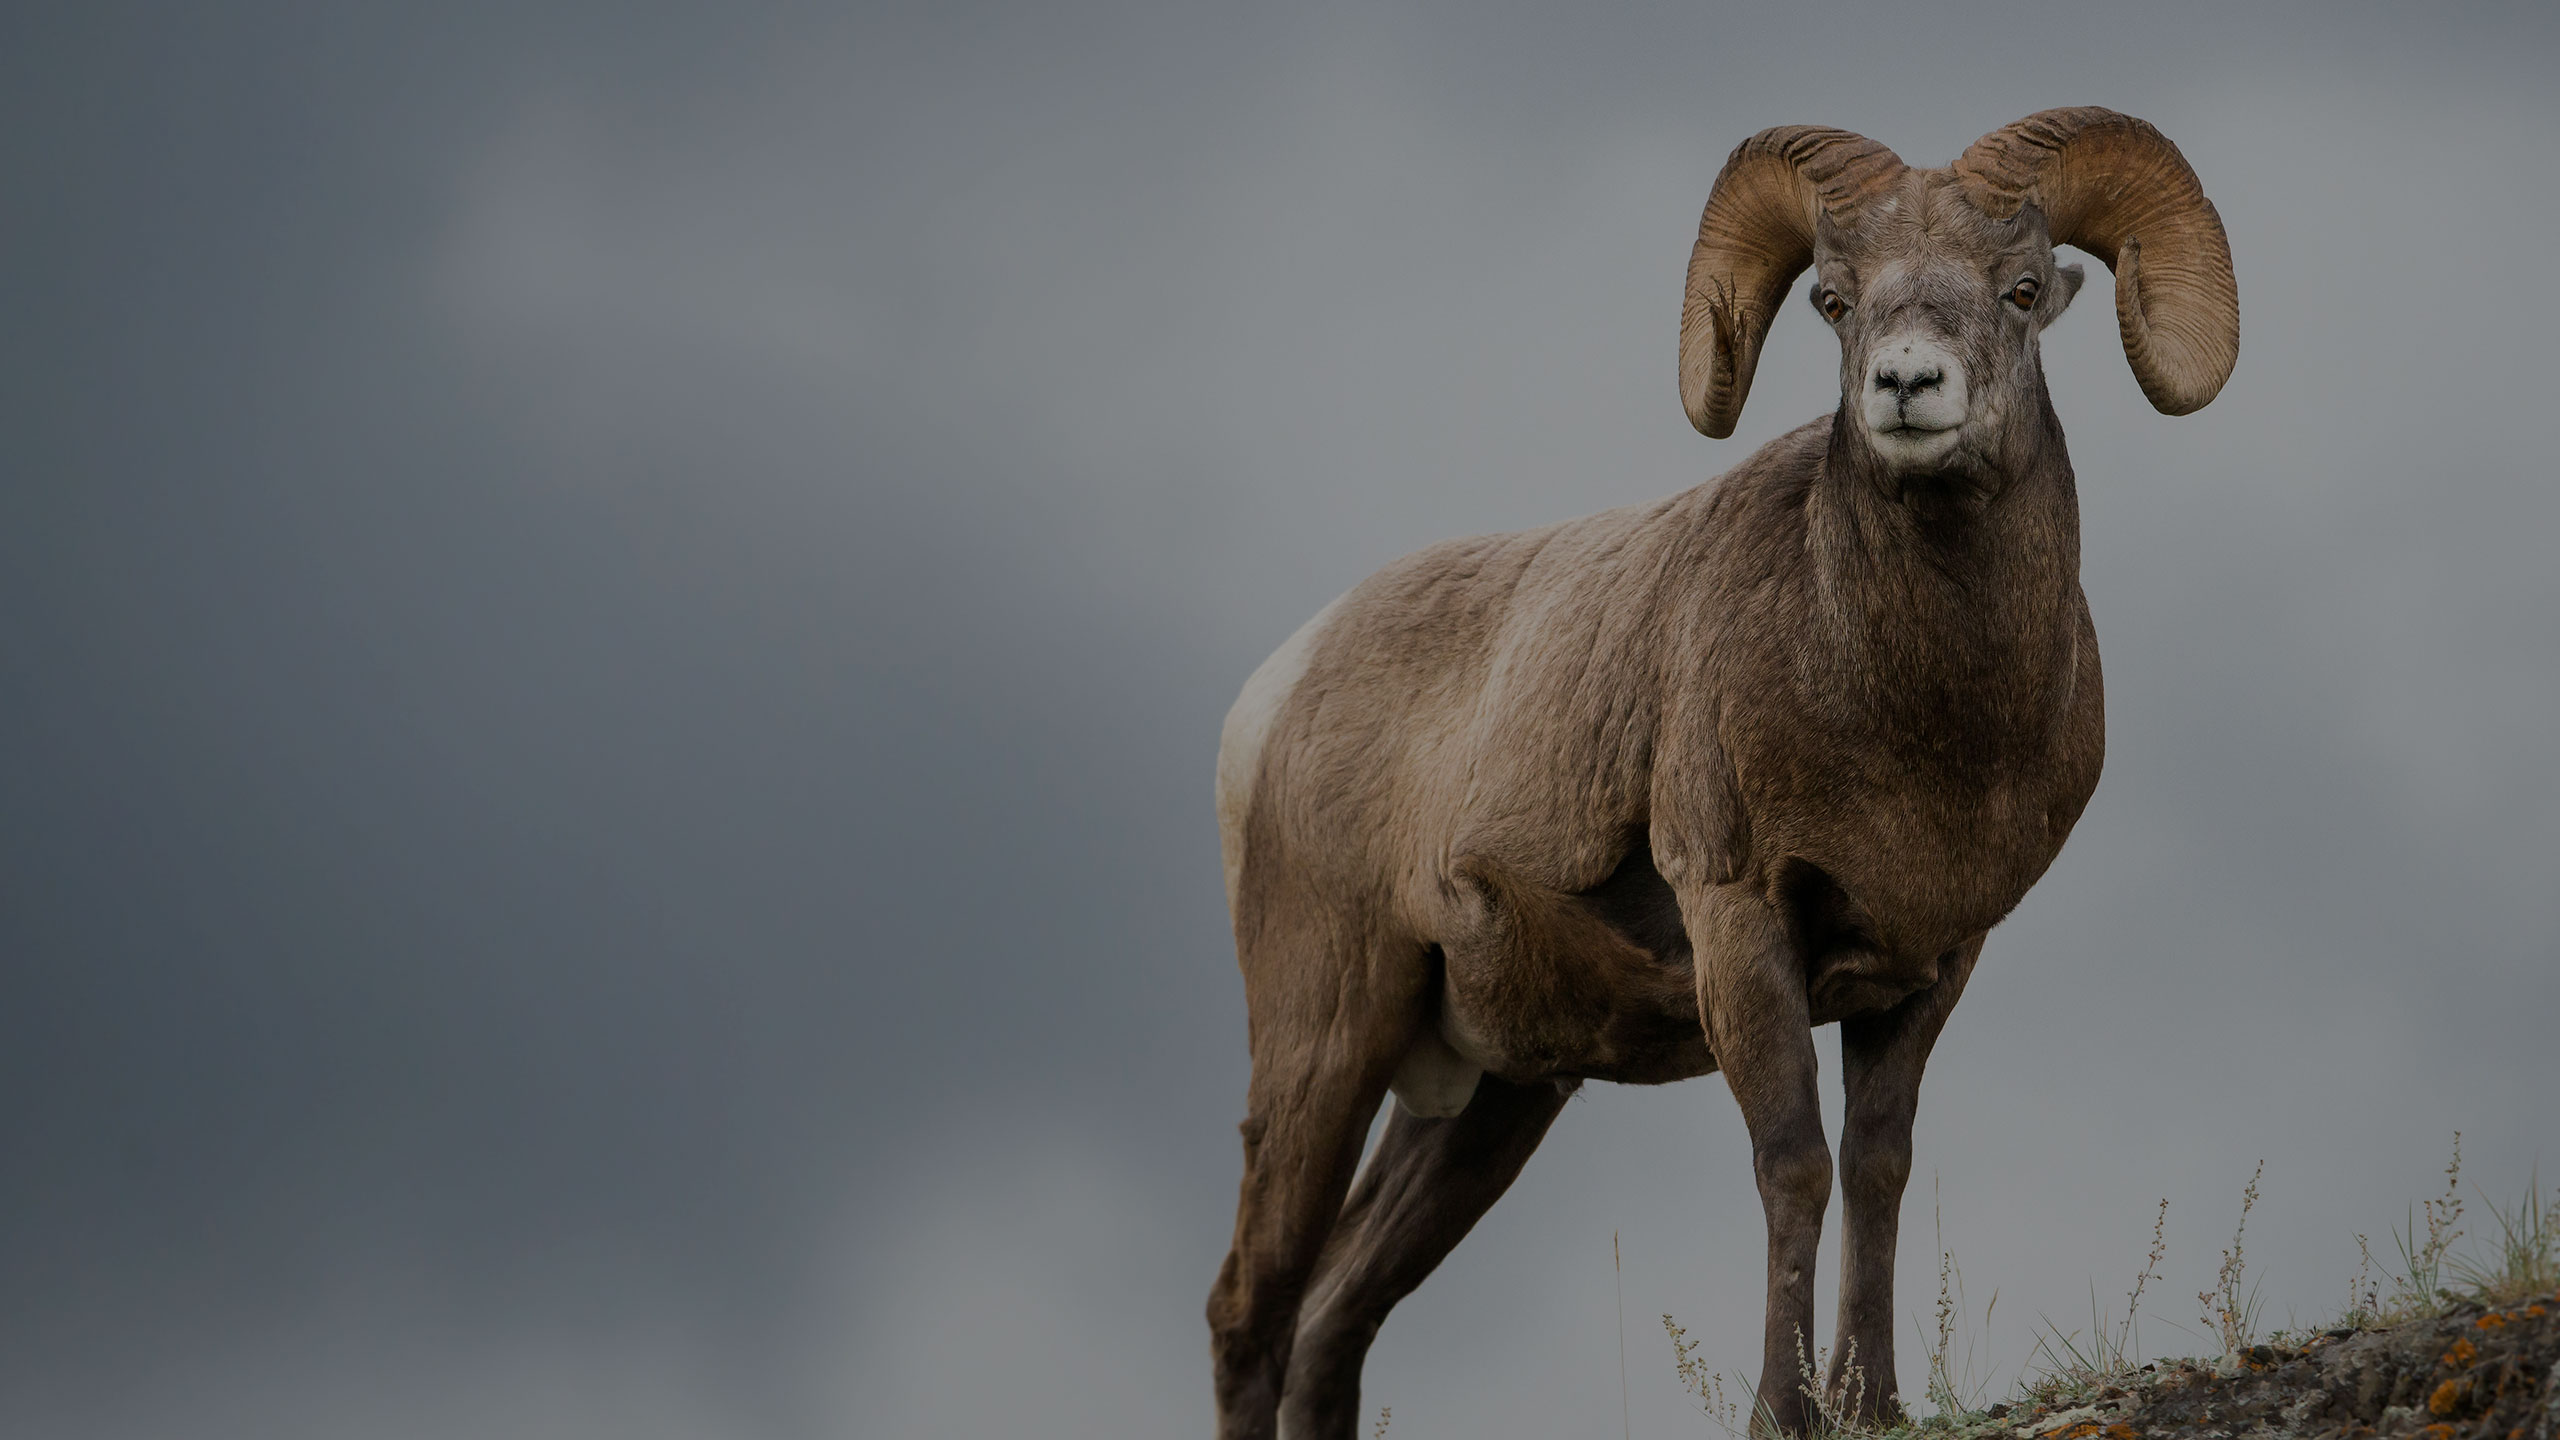 bighorn sheep guide arizona new mexico - g3 outfitters